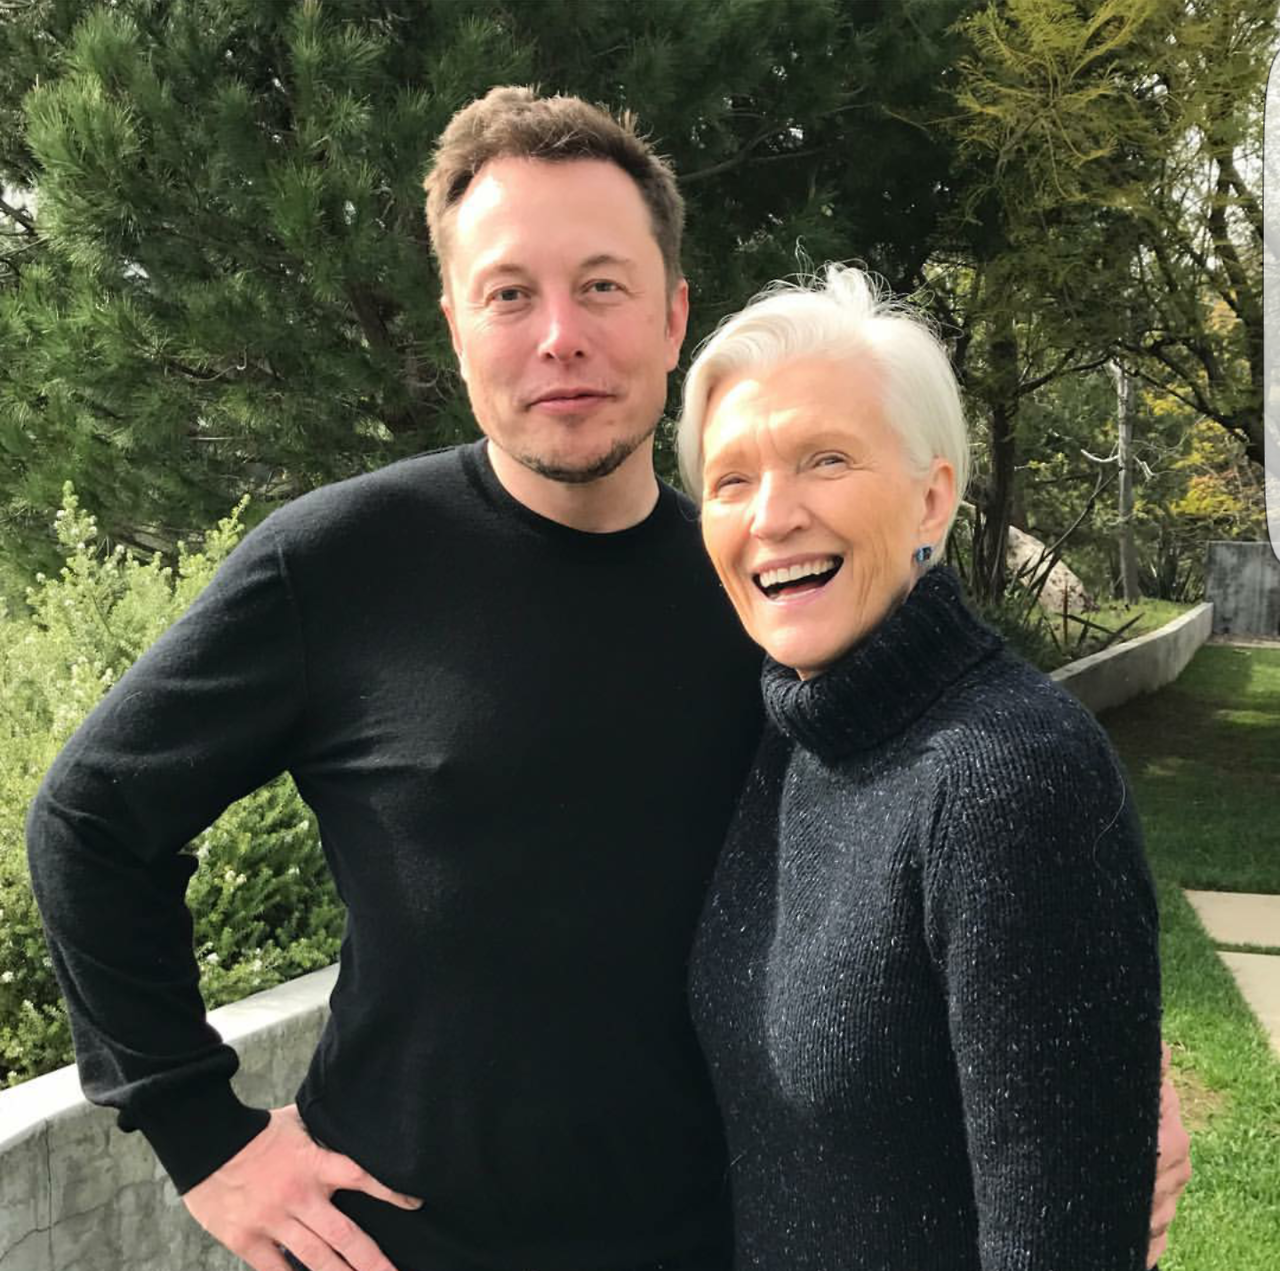 Elon with his mother Maye musk  ❤ | Attention-grabbers